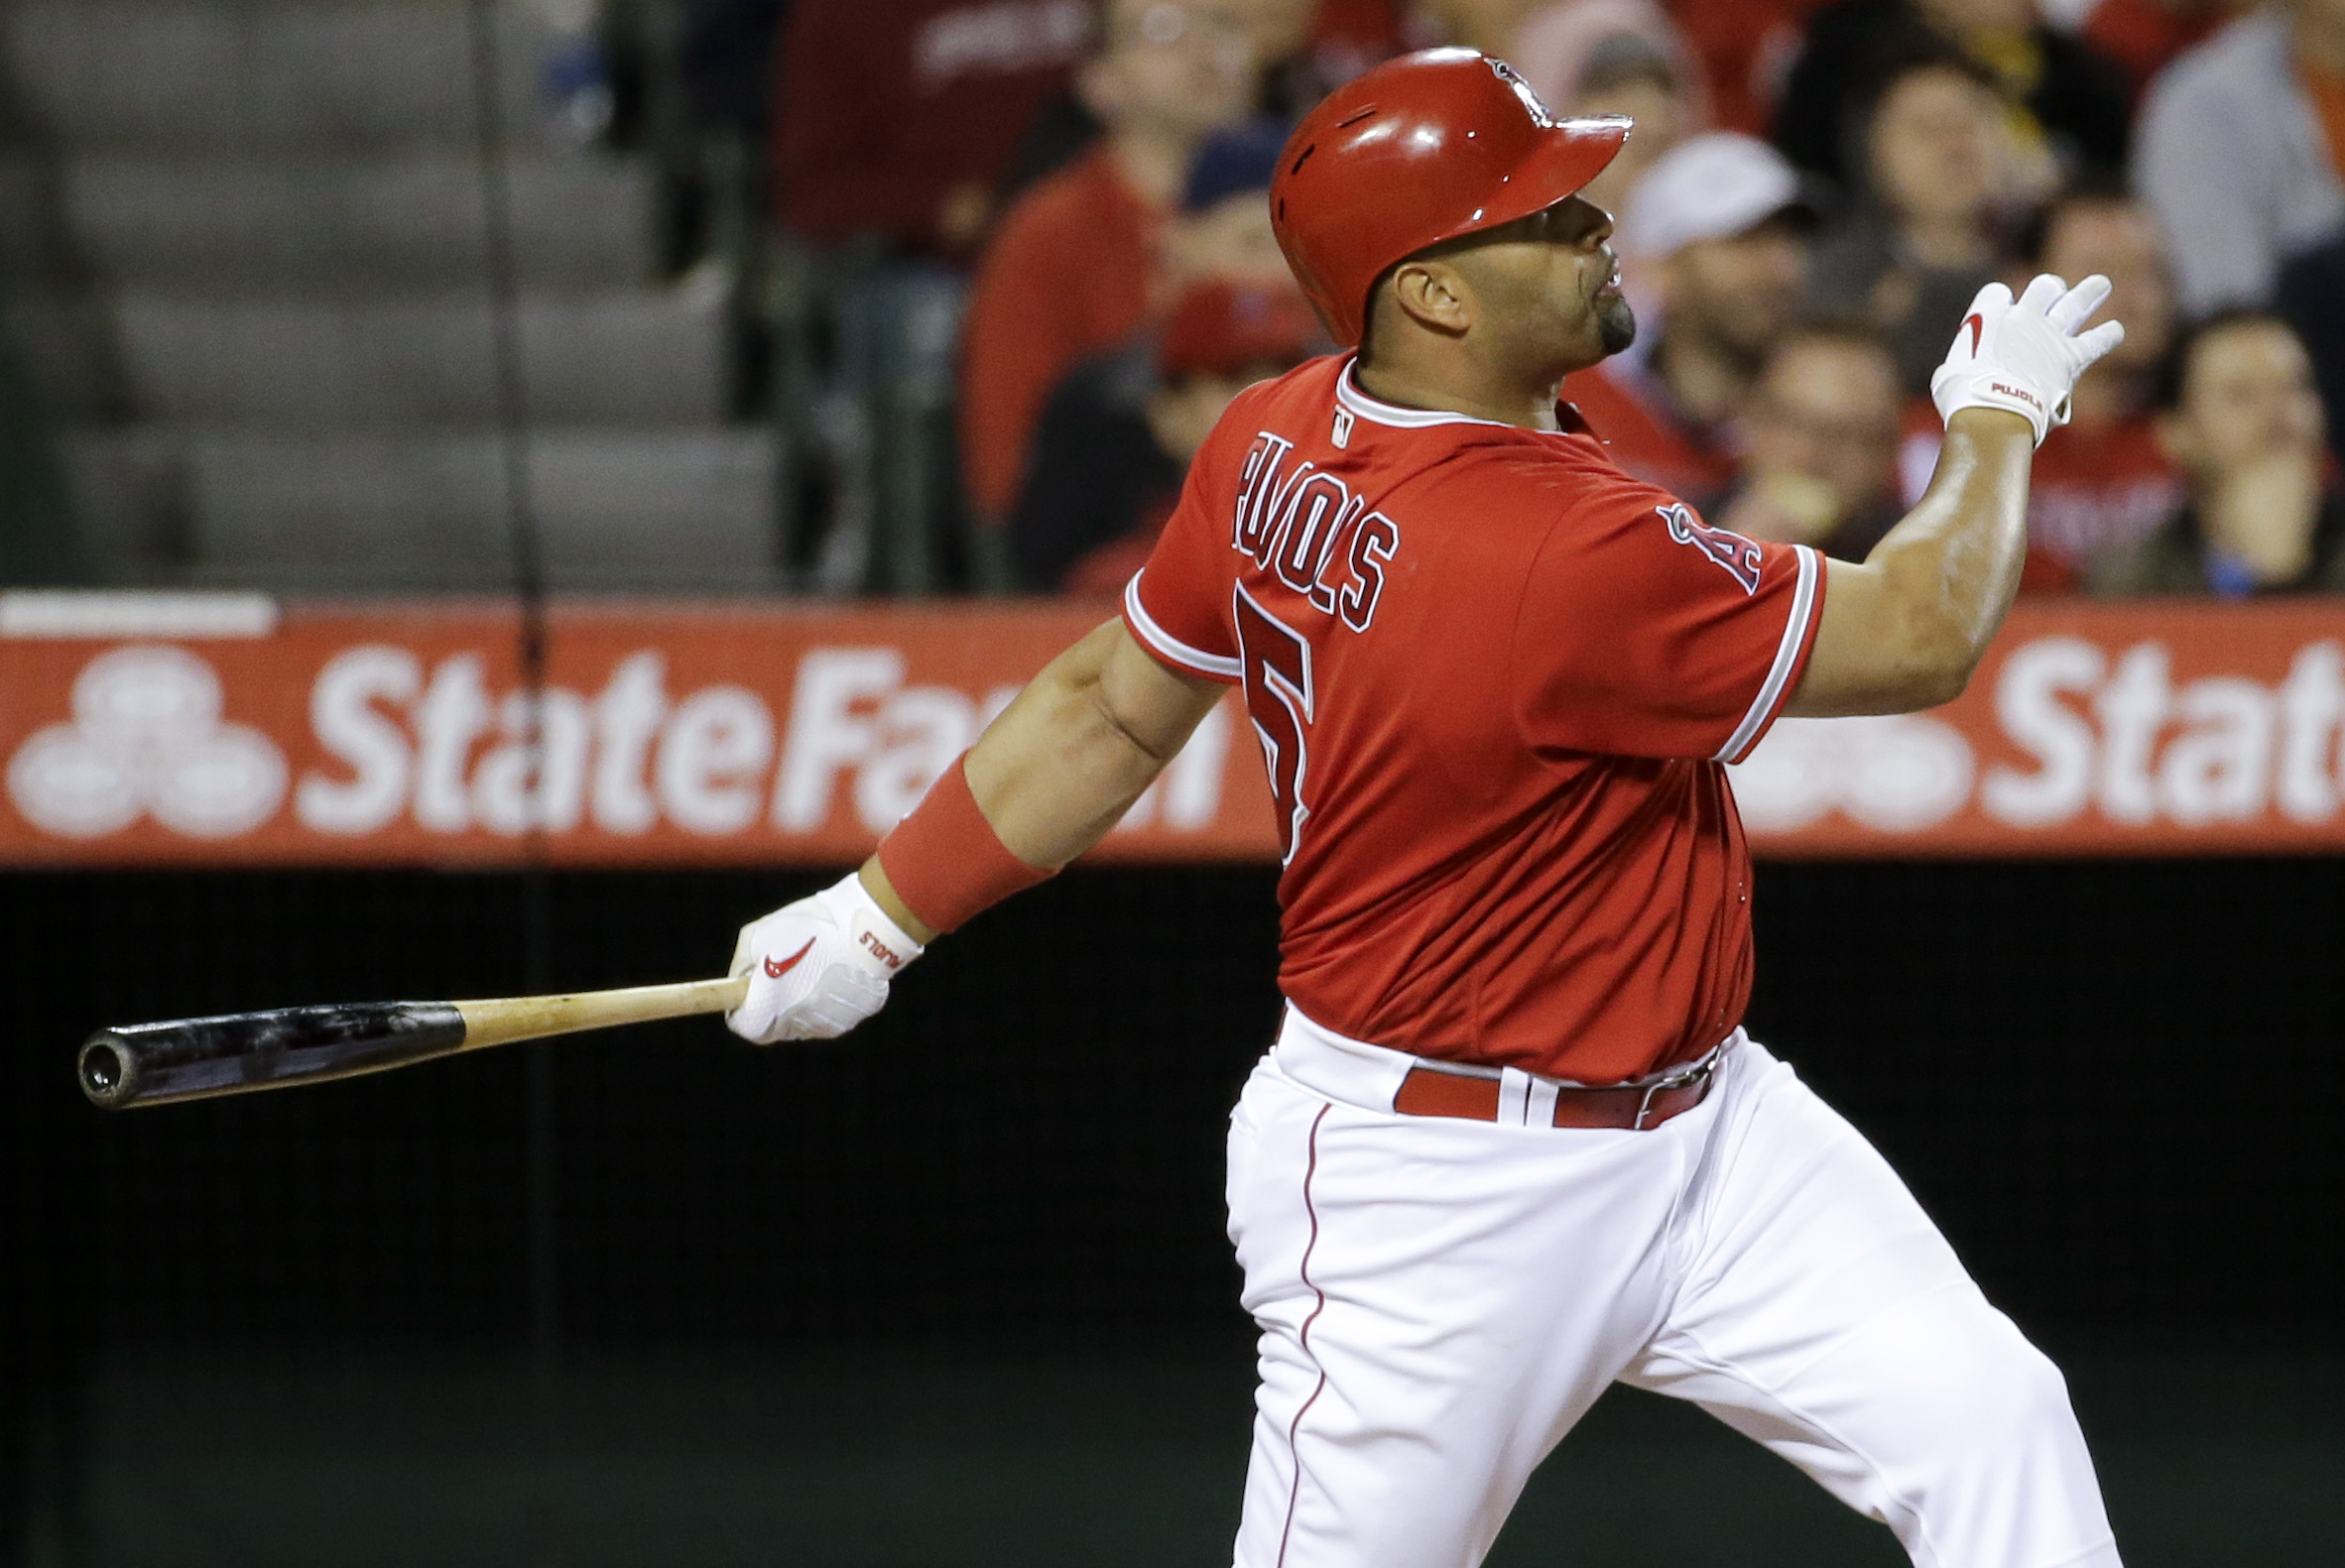 Los Angeles Angels' Albert Pujols watches his home run against the Kansas City Royals during the fifth inning of a baseball game in Anaheim, Calif., Monday, April 25, 2016. (AP Photo/Chris Carlson)